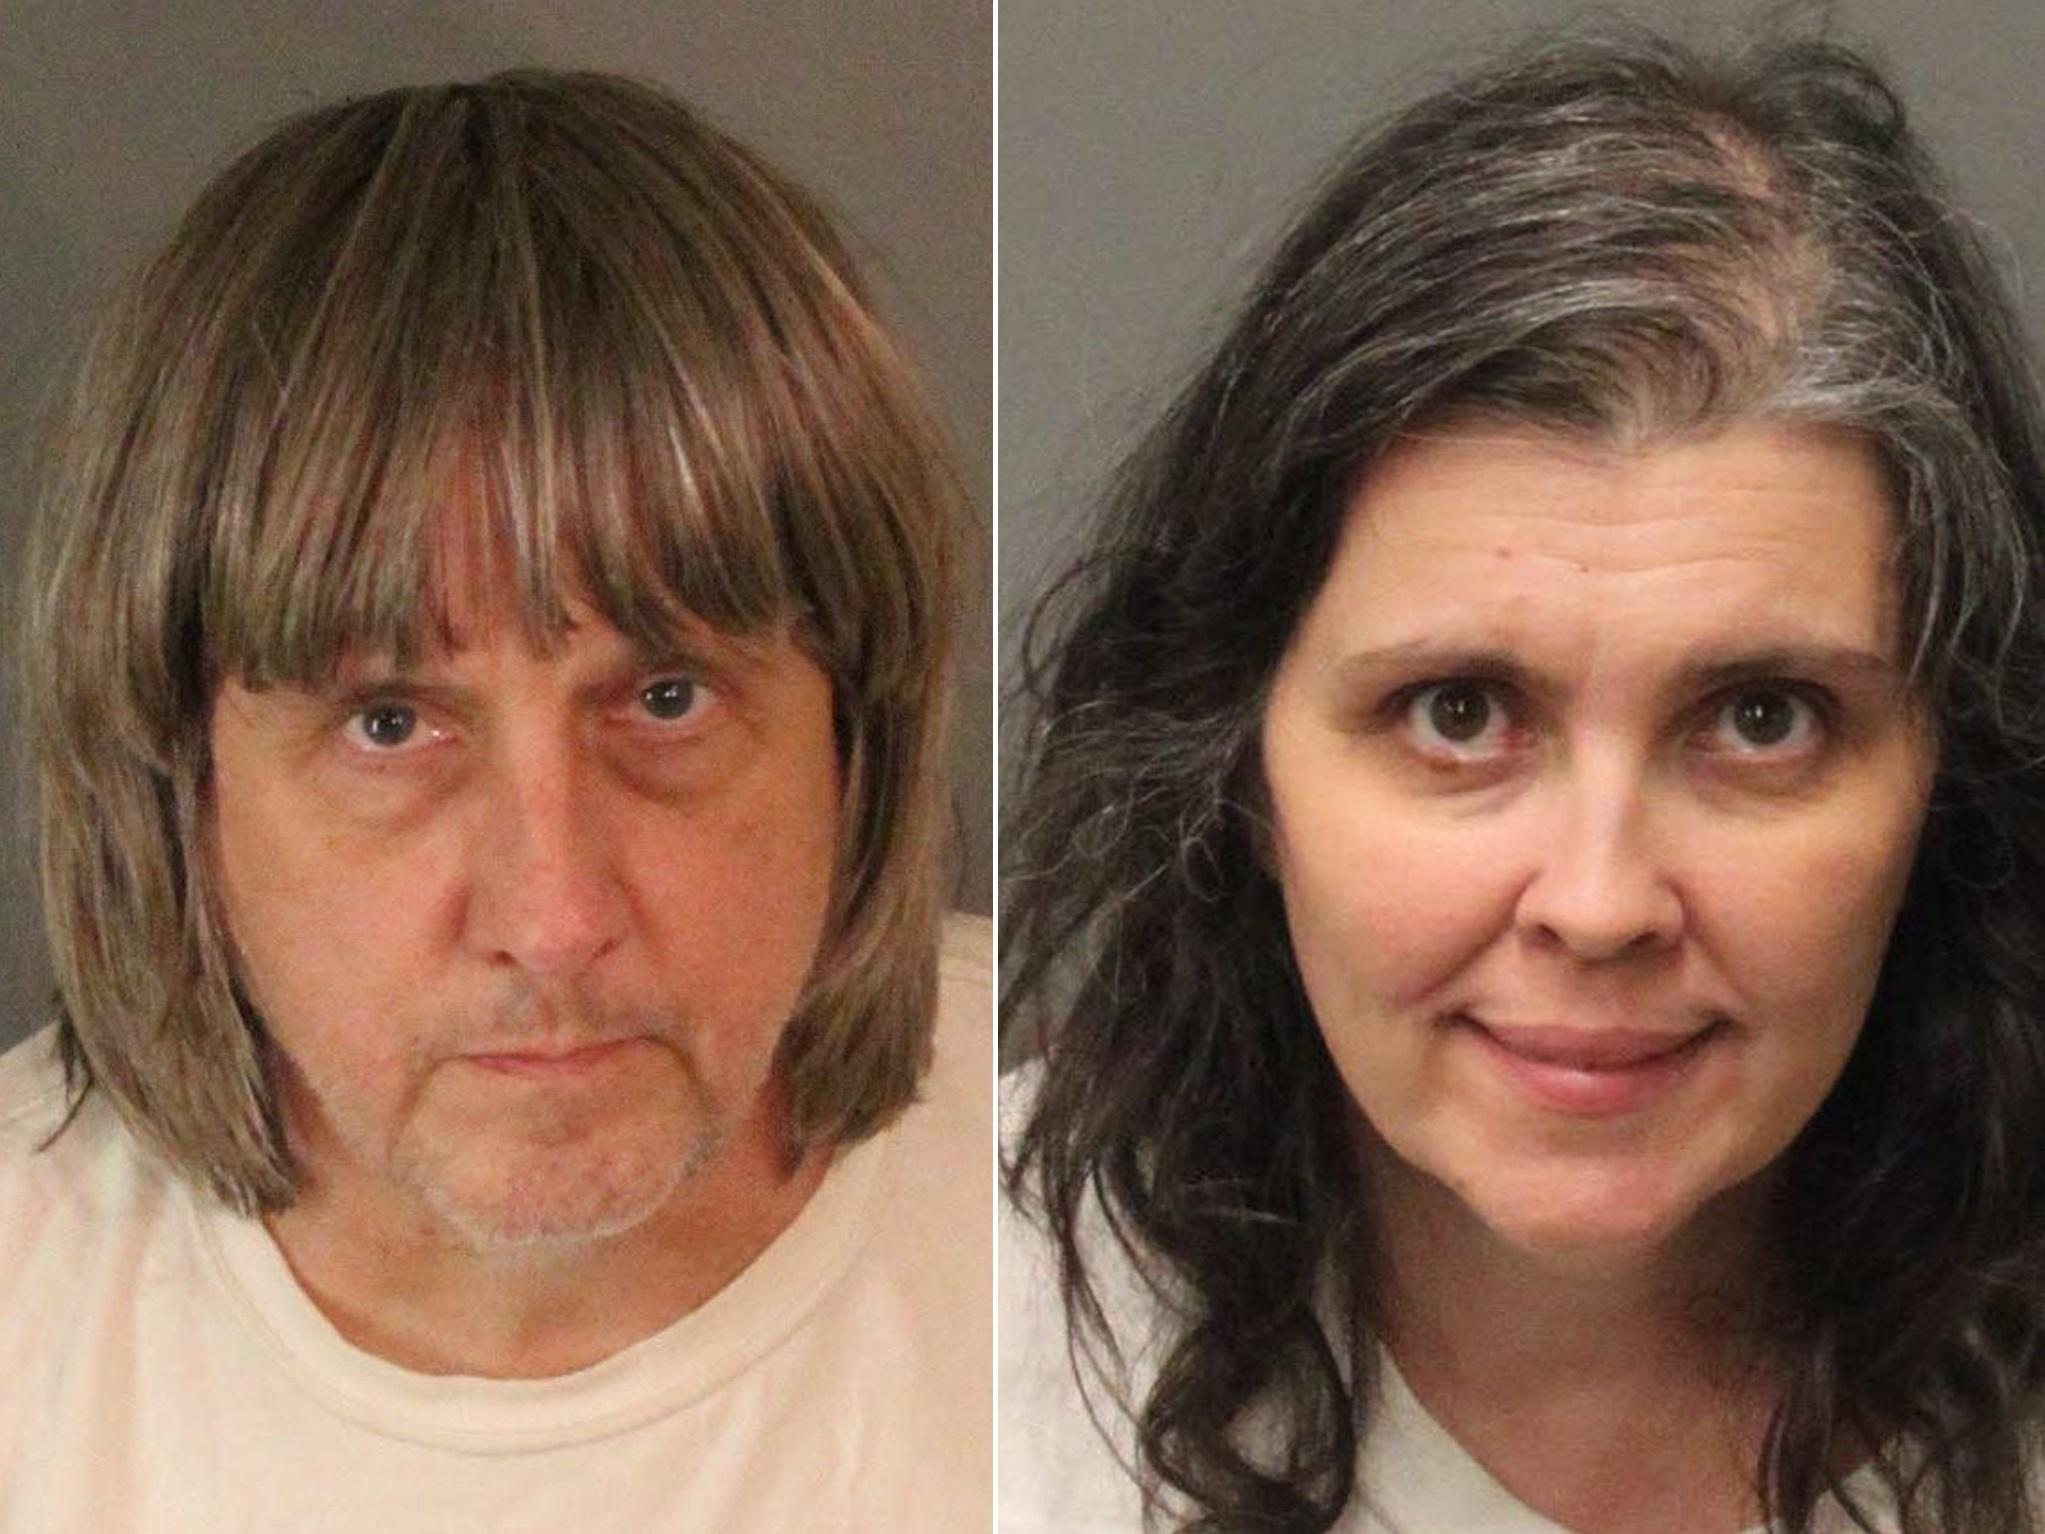 The Turpin parents have been charged by police after discovery of 13 imprisoned siblings